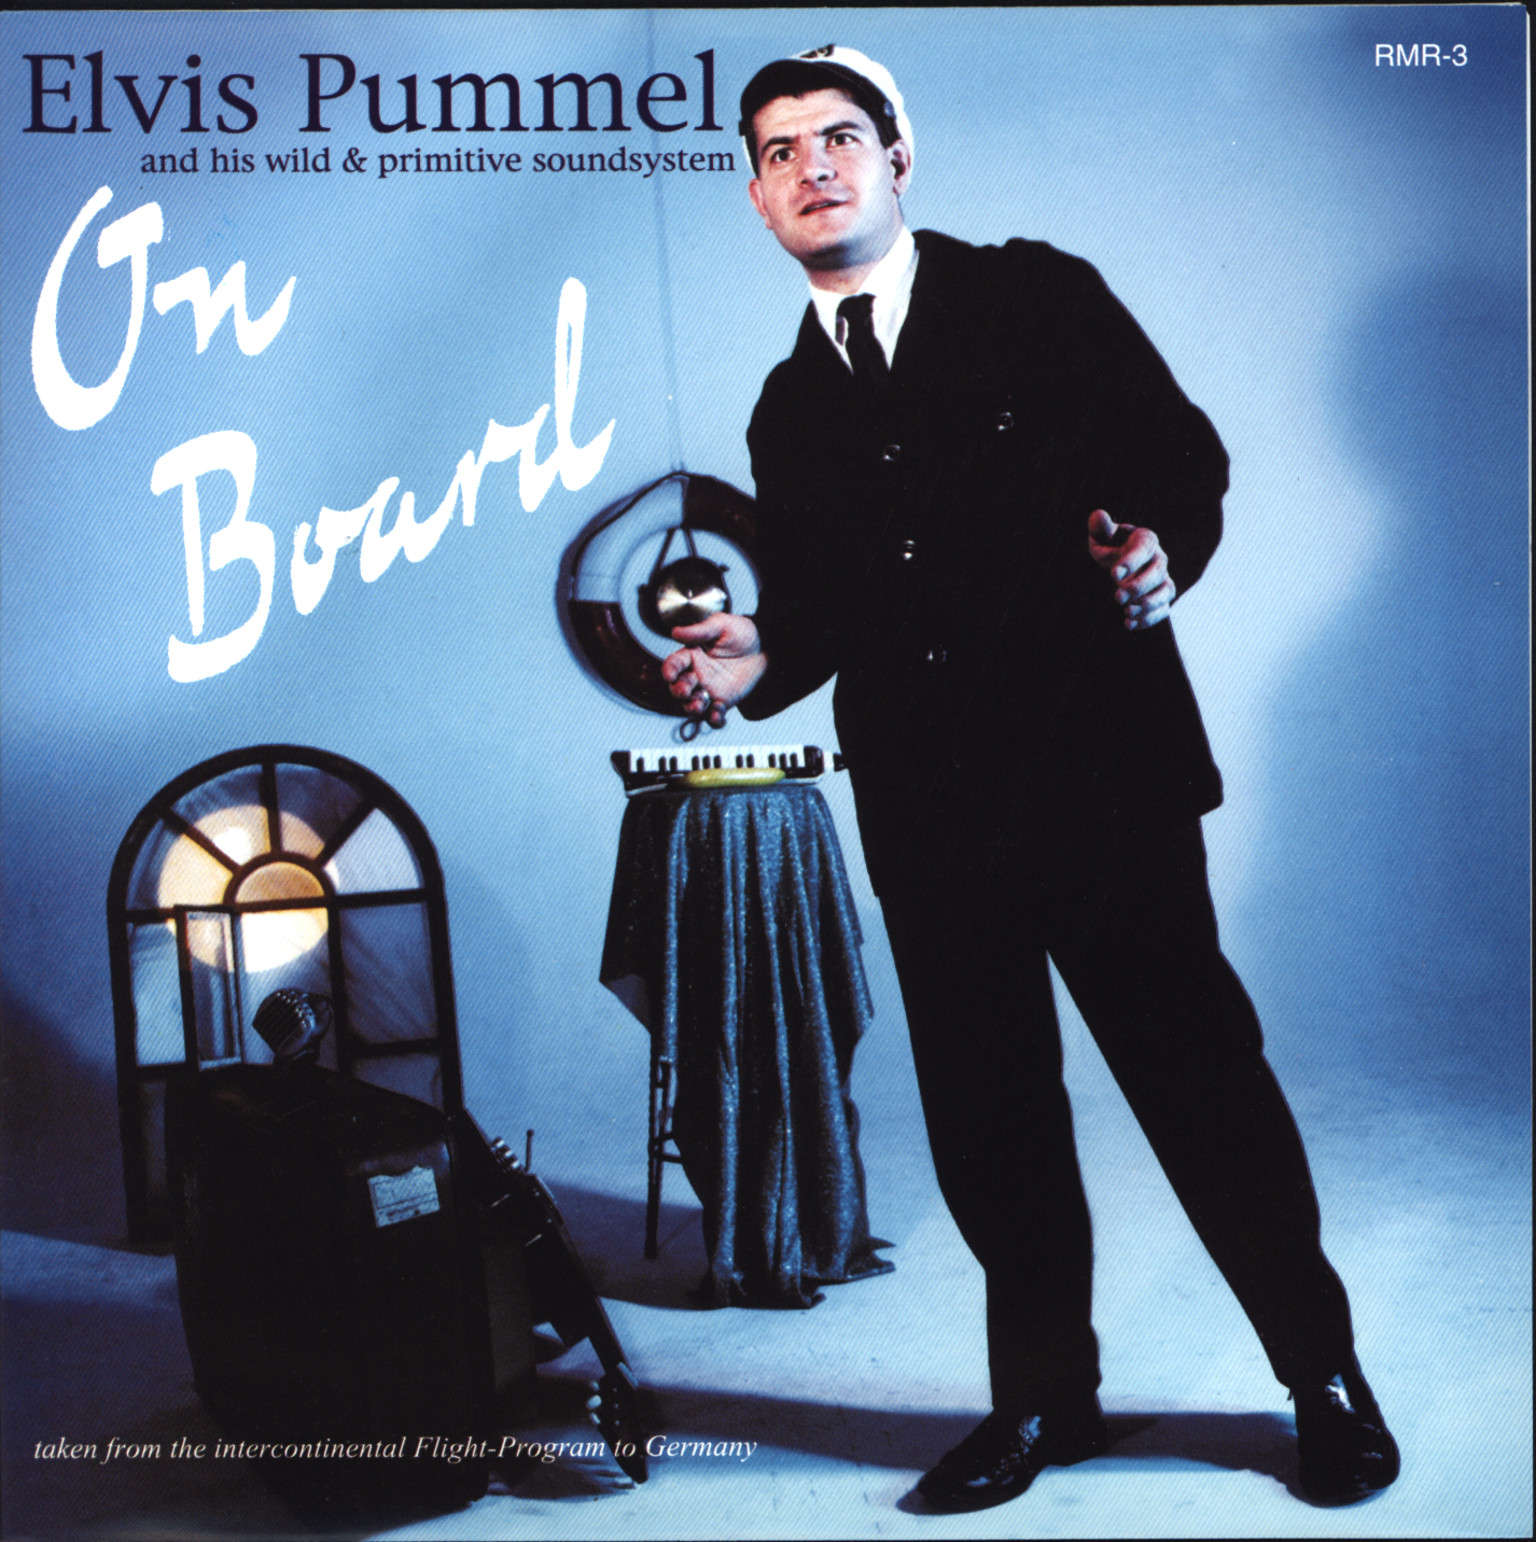 "Elvis Pummel: On Board (And His Wild & Primitive Soundsystem), 7"" Single (Vinyl)"